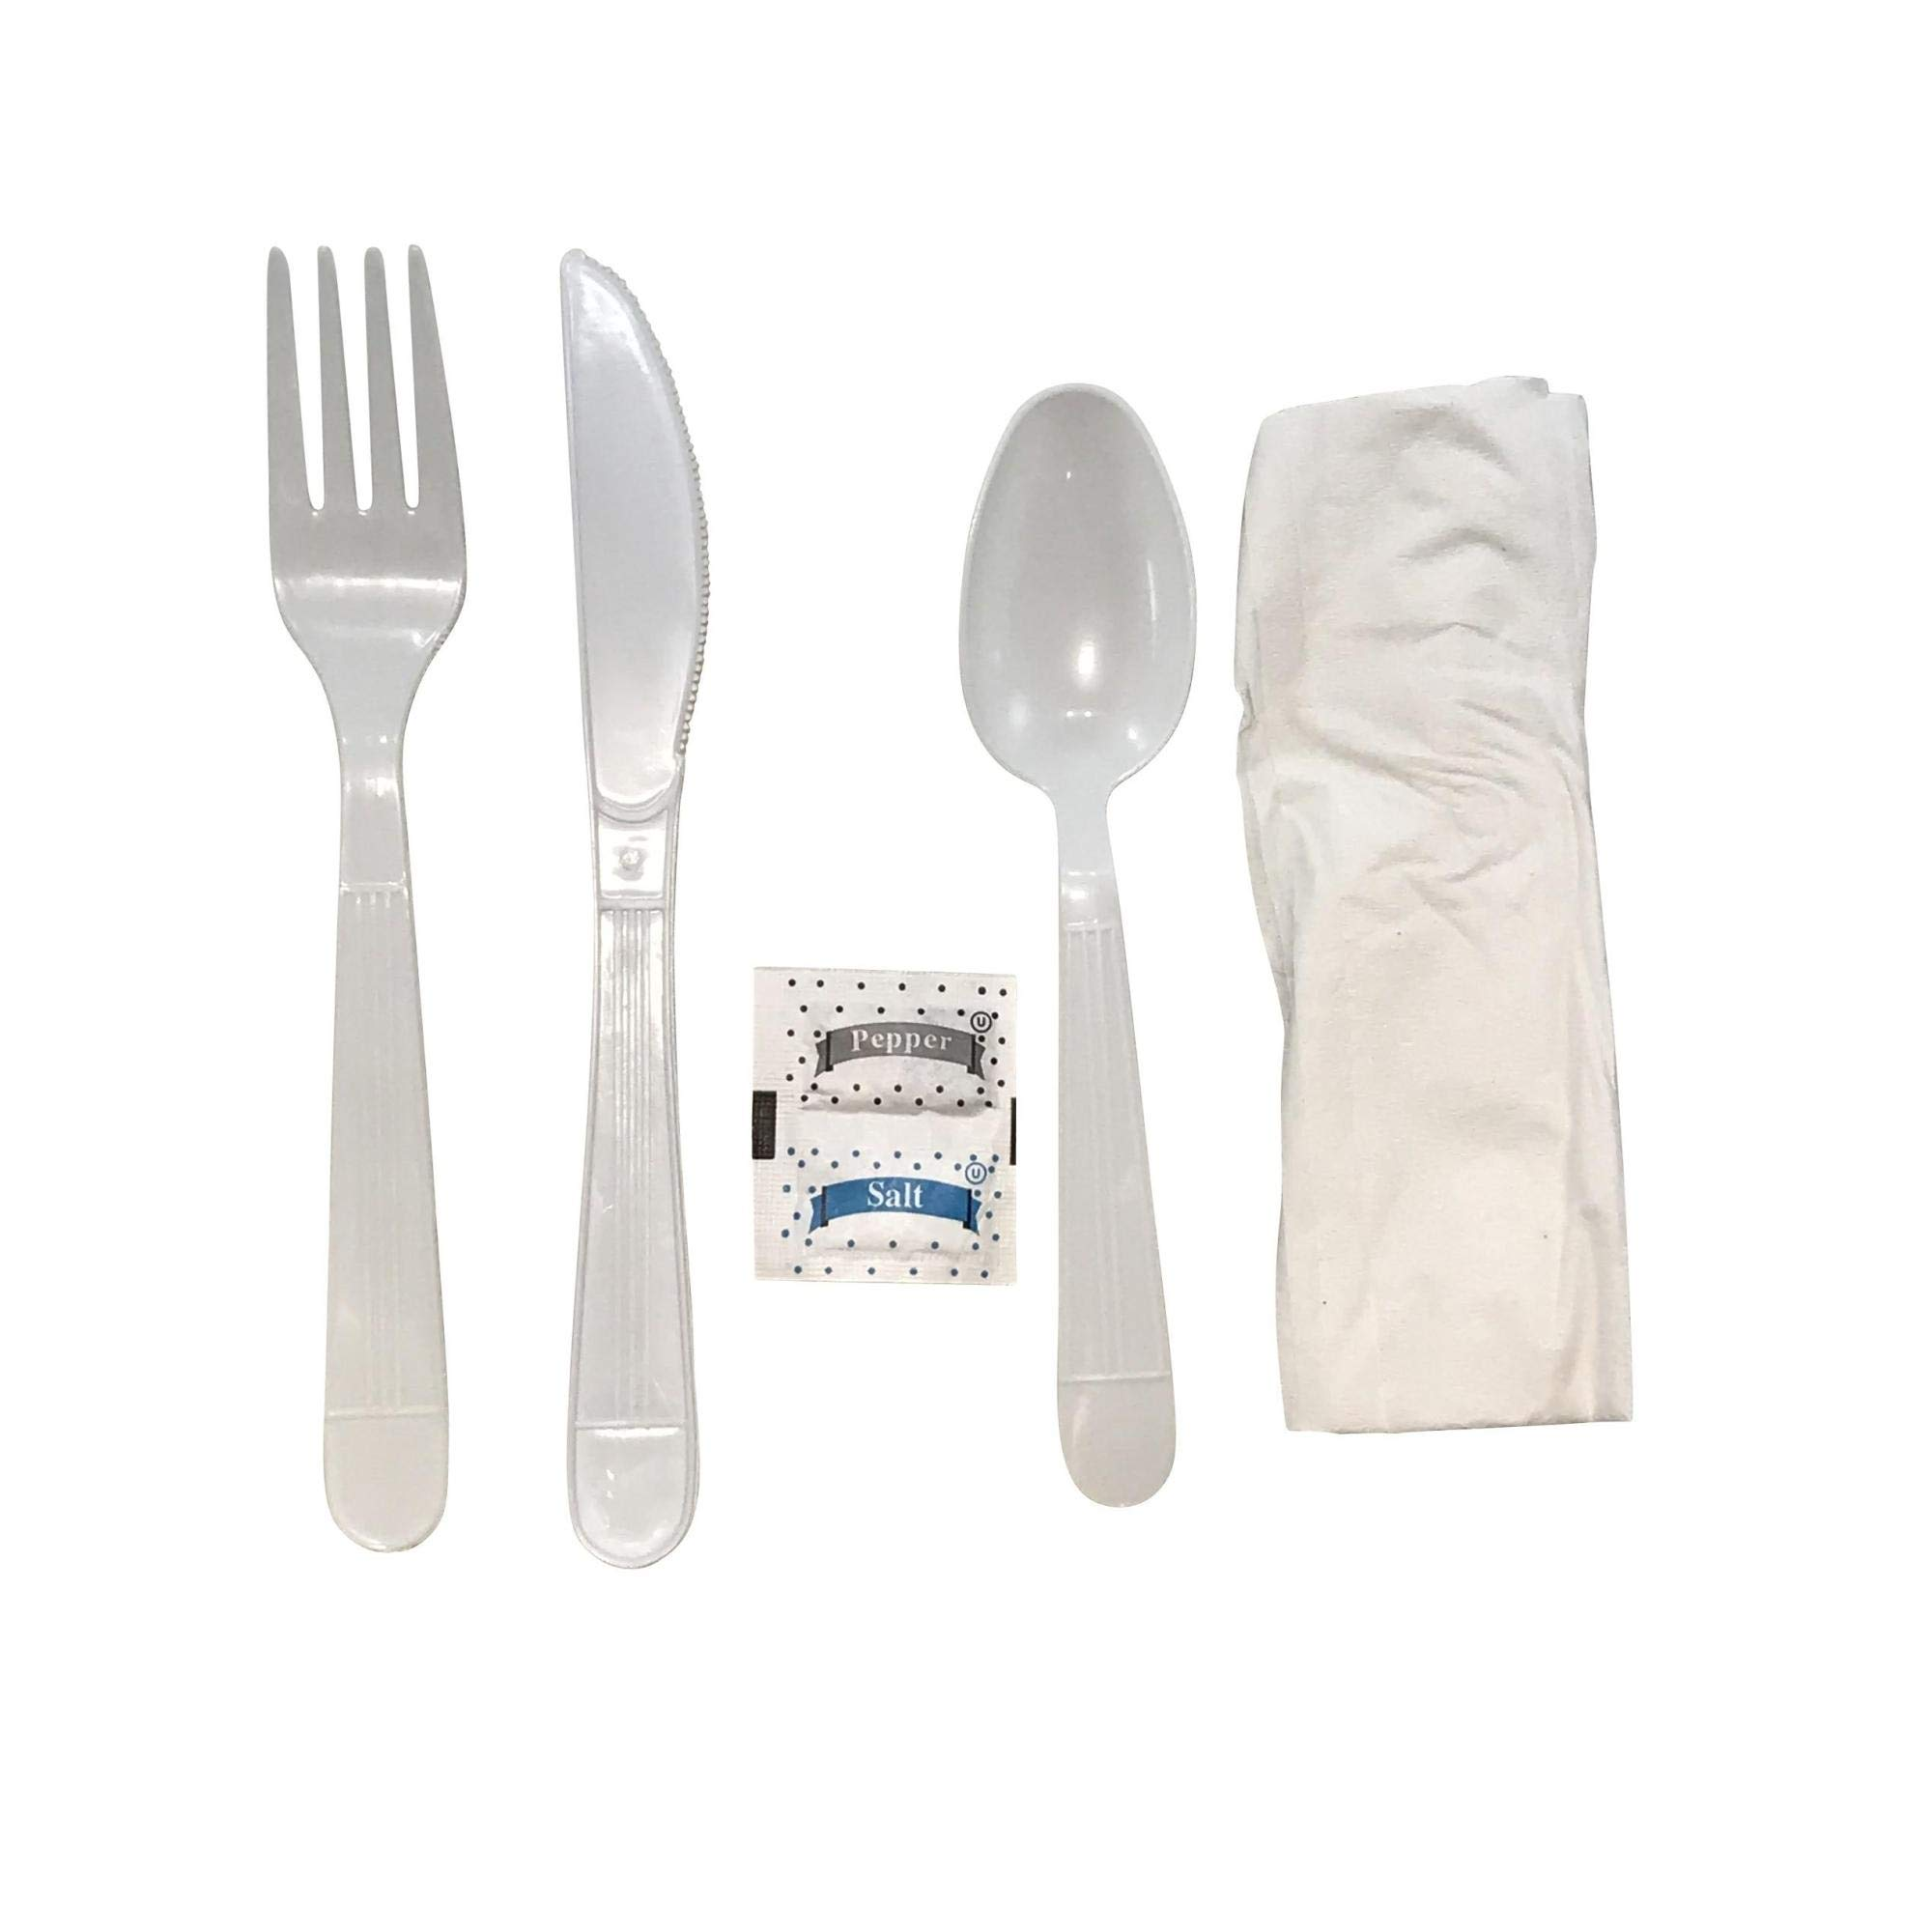 Faithful Supply 125/case Plastic Cutlery Packets Individually Wrapped | Heavy Duty White Wrapped Cutlery Kit with Fork Spoon Knife Napkin and Salt and Pepper Packets (White, 125) by Faithful Supply